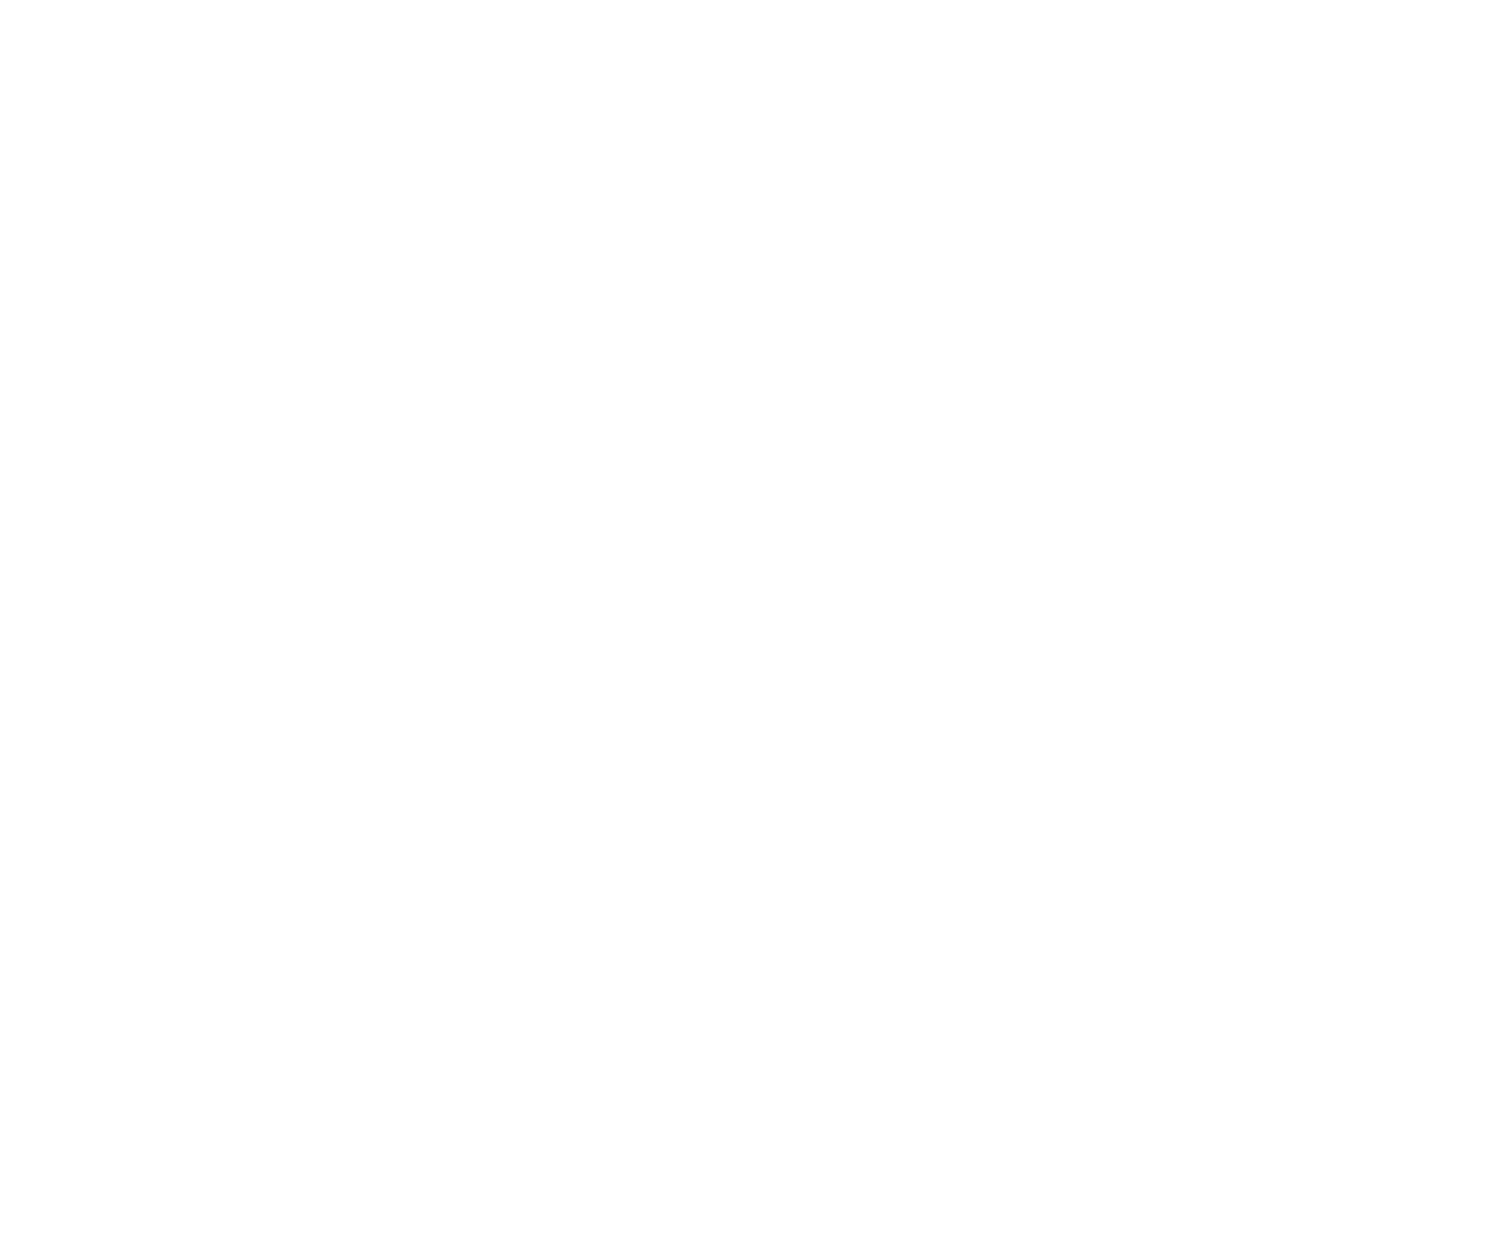 THRIVE PSYCHOLOGY | COUNSELING THERAPY | WOMEN'S PSYCHOLOGY EXPERTS | SANTA MONICA | BEVERLY HILLS |